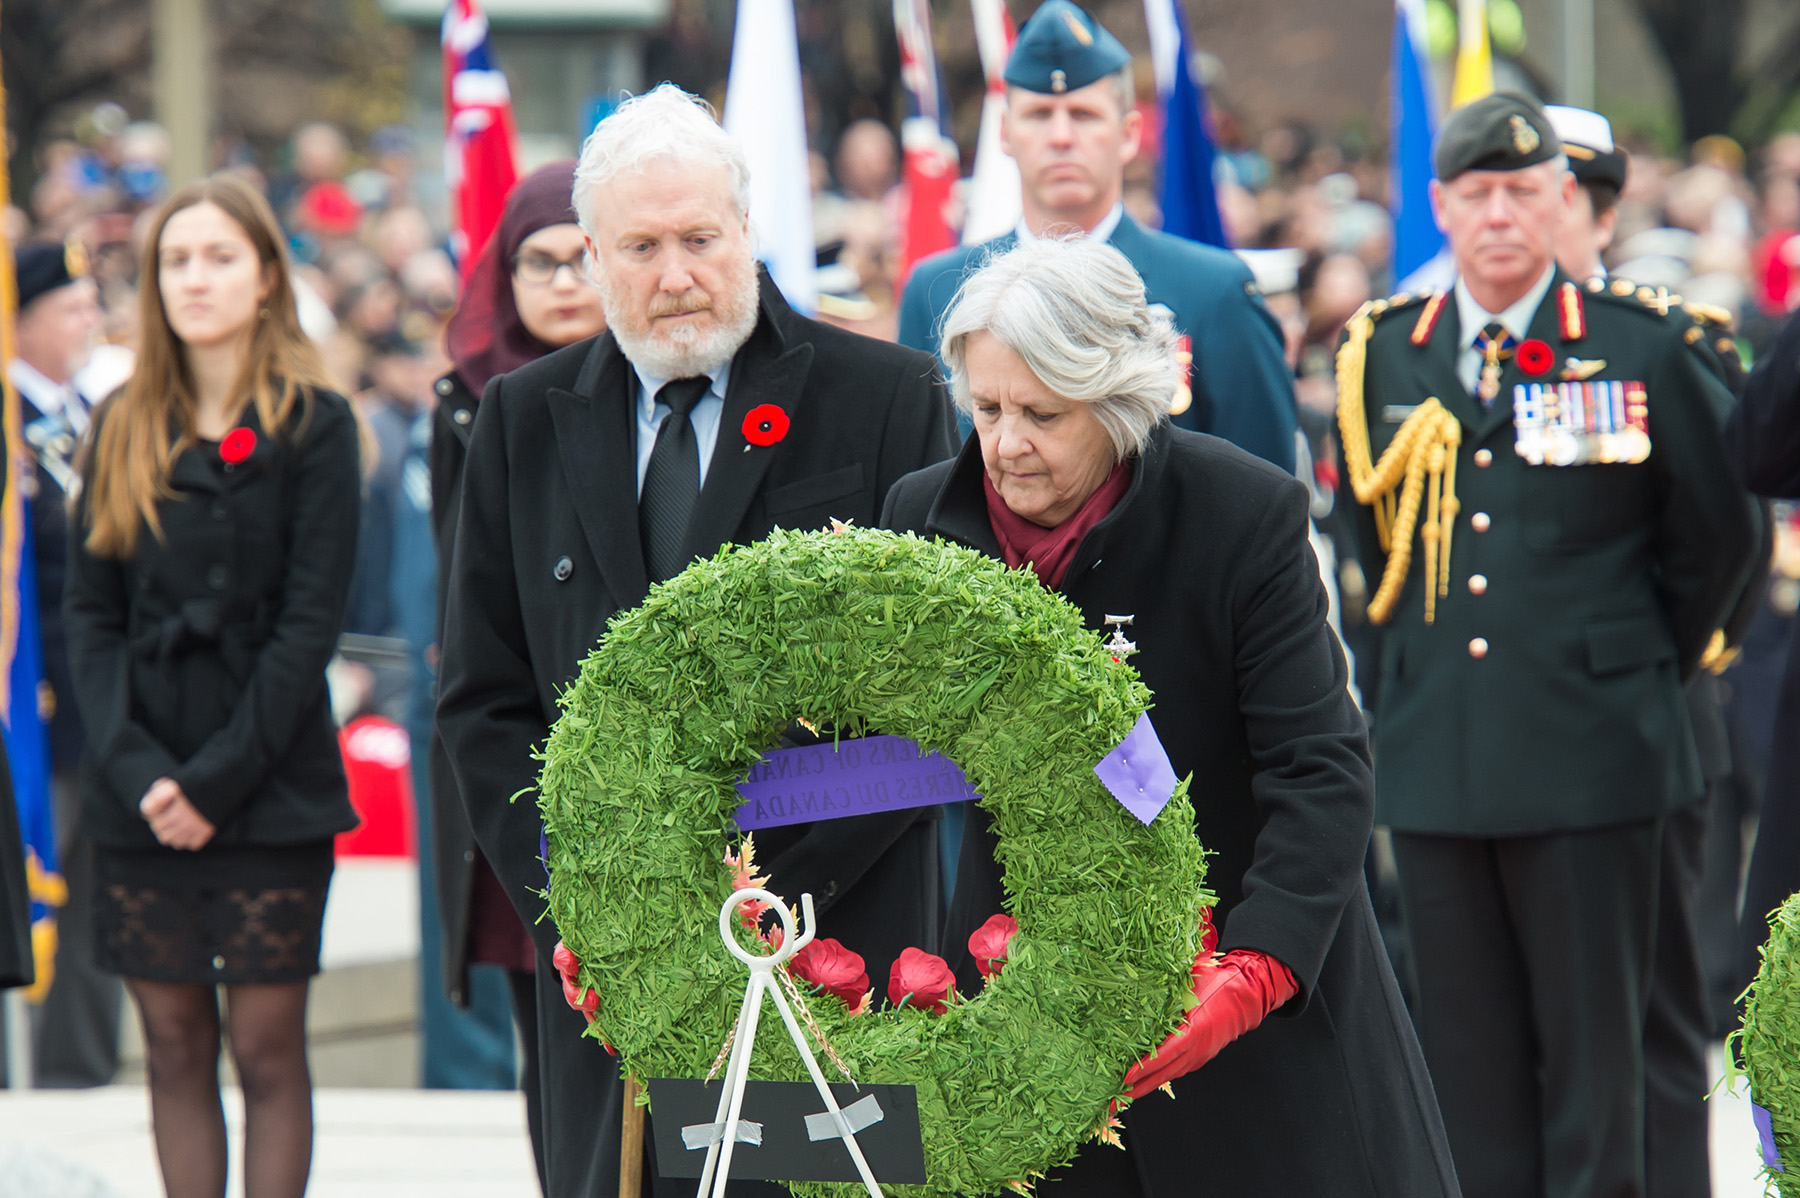 Sheila Anderson, the Royal Canadian Legion's Silver Cross mother, places a wreath at the National War Memorial during the 2015 Remembrance Day ceremony held at the National War Memorial in Ottawa, Ontario, on November 11, 2015. PHOTO: Corporal Chase Miller